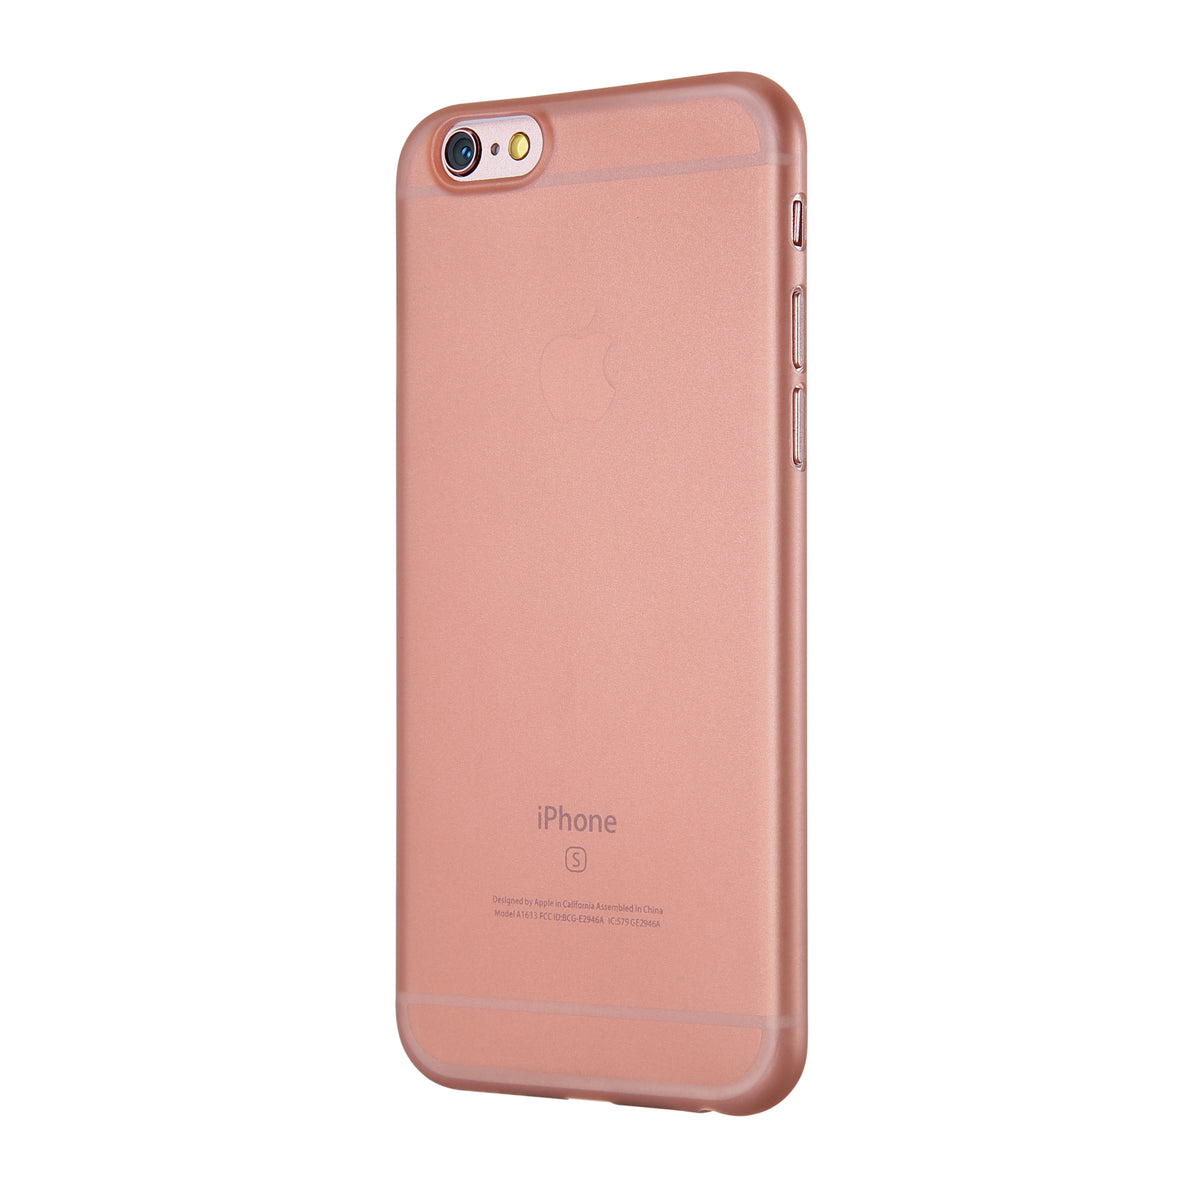 Go Original iPhone 6/6s Plus Slim Case